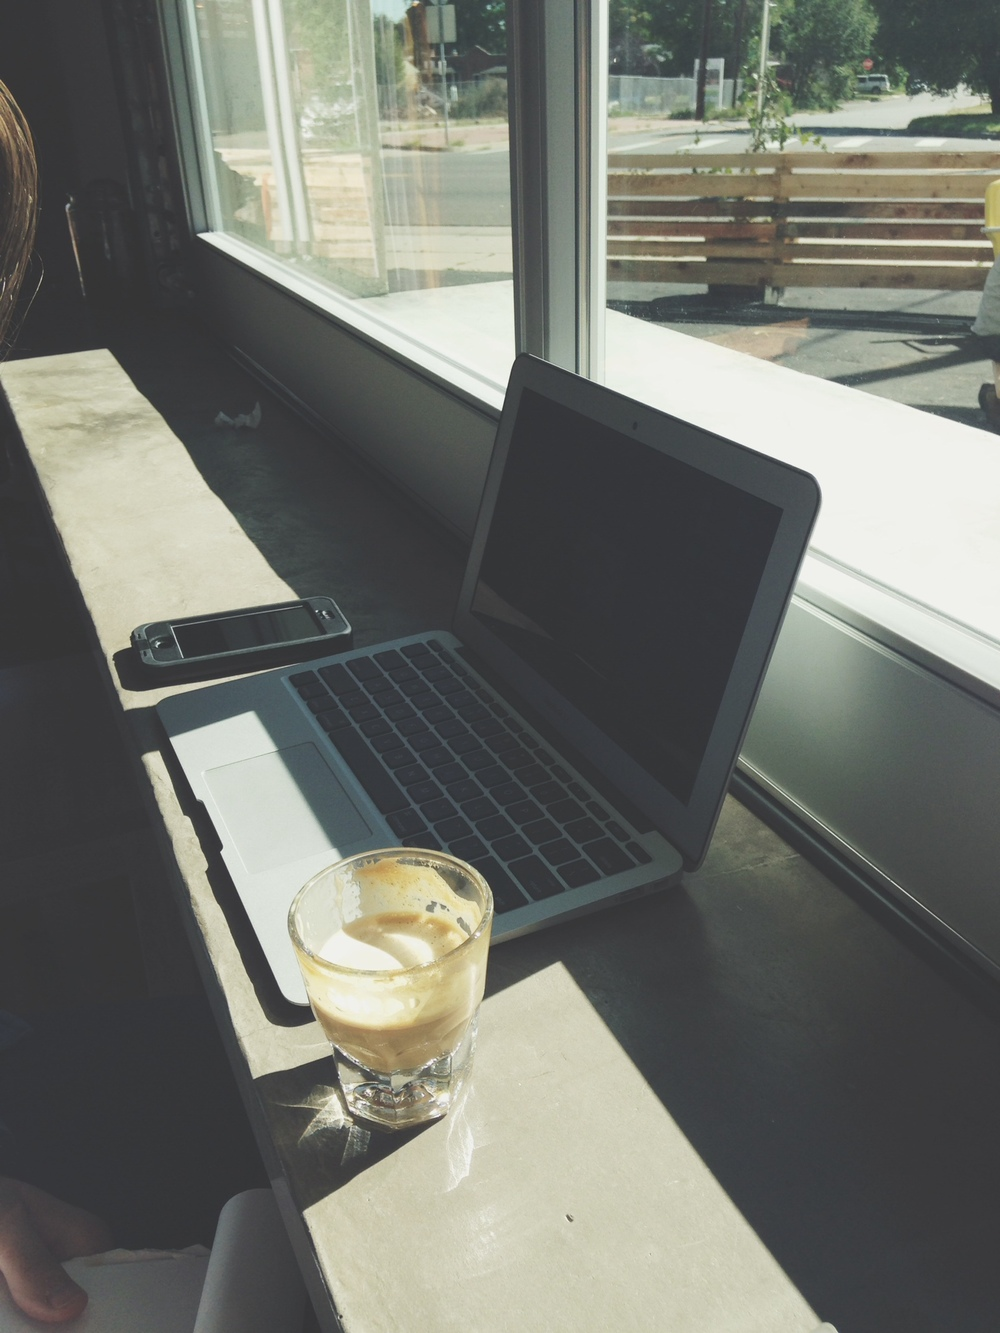 The garage door makes for a great spot to send emails, blog or whatever!